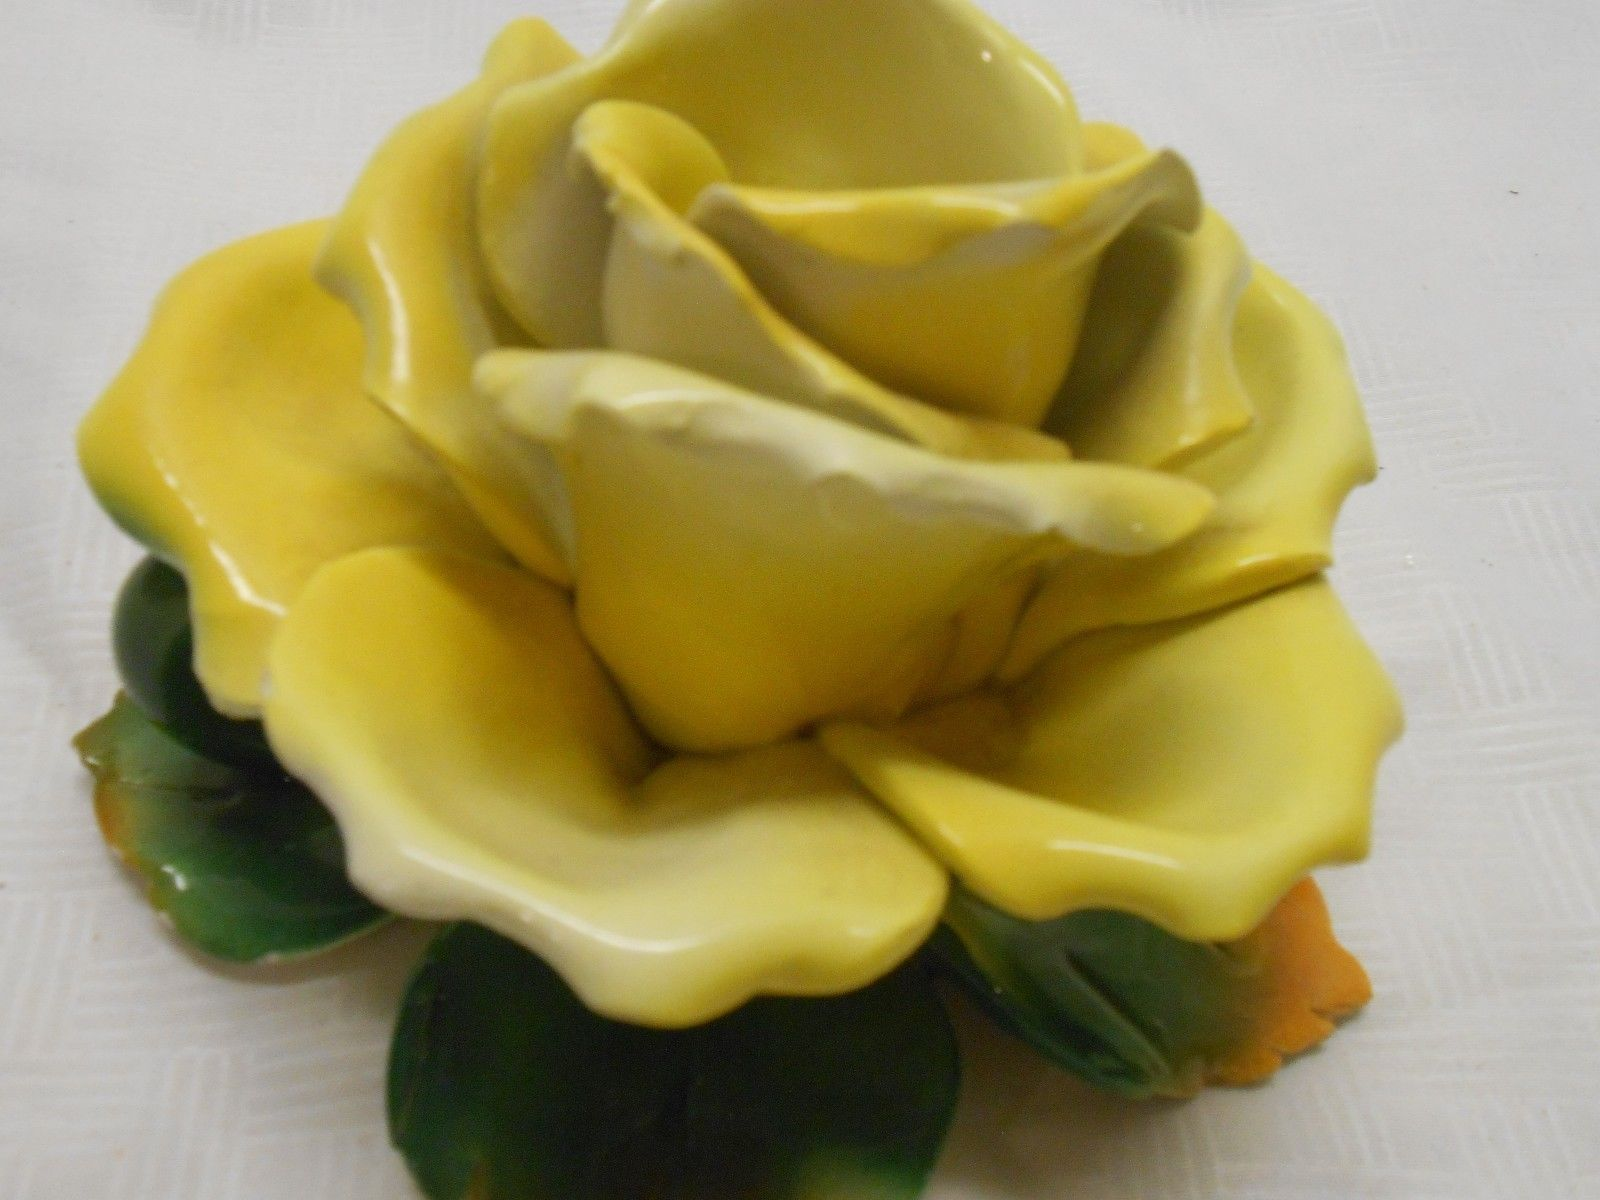 Made in Italy Porcelain Yellow Rose Candle and similar items